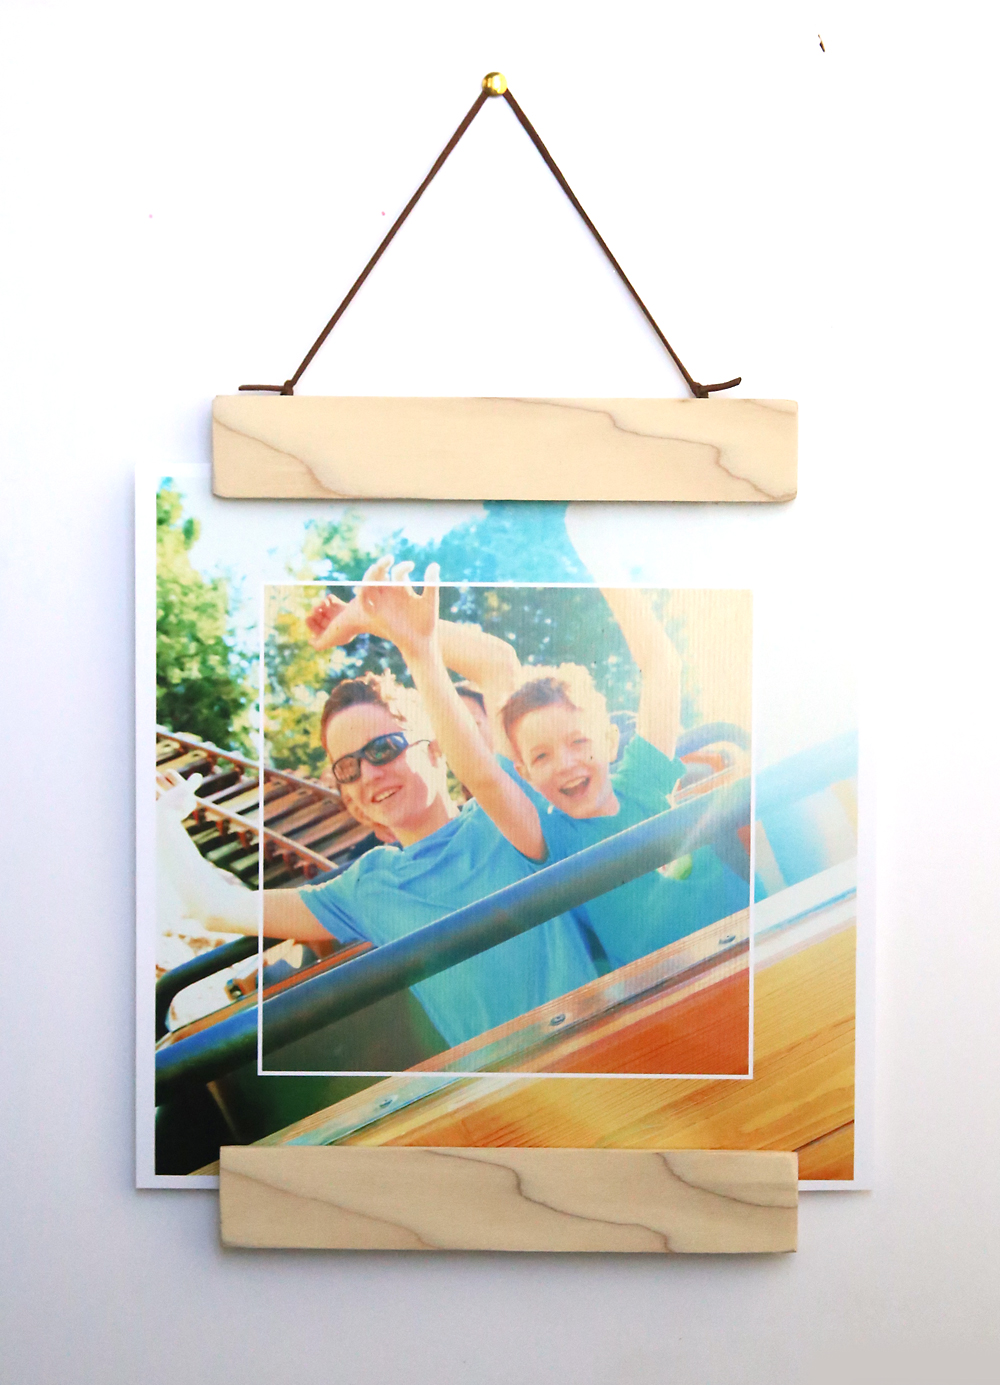 Photo in a hanging wood frame